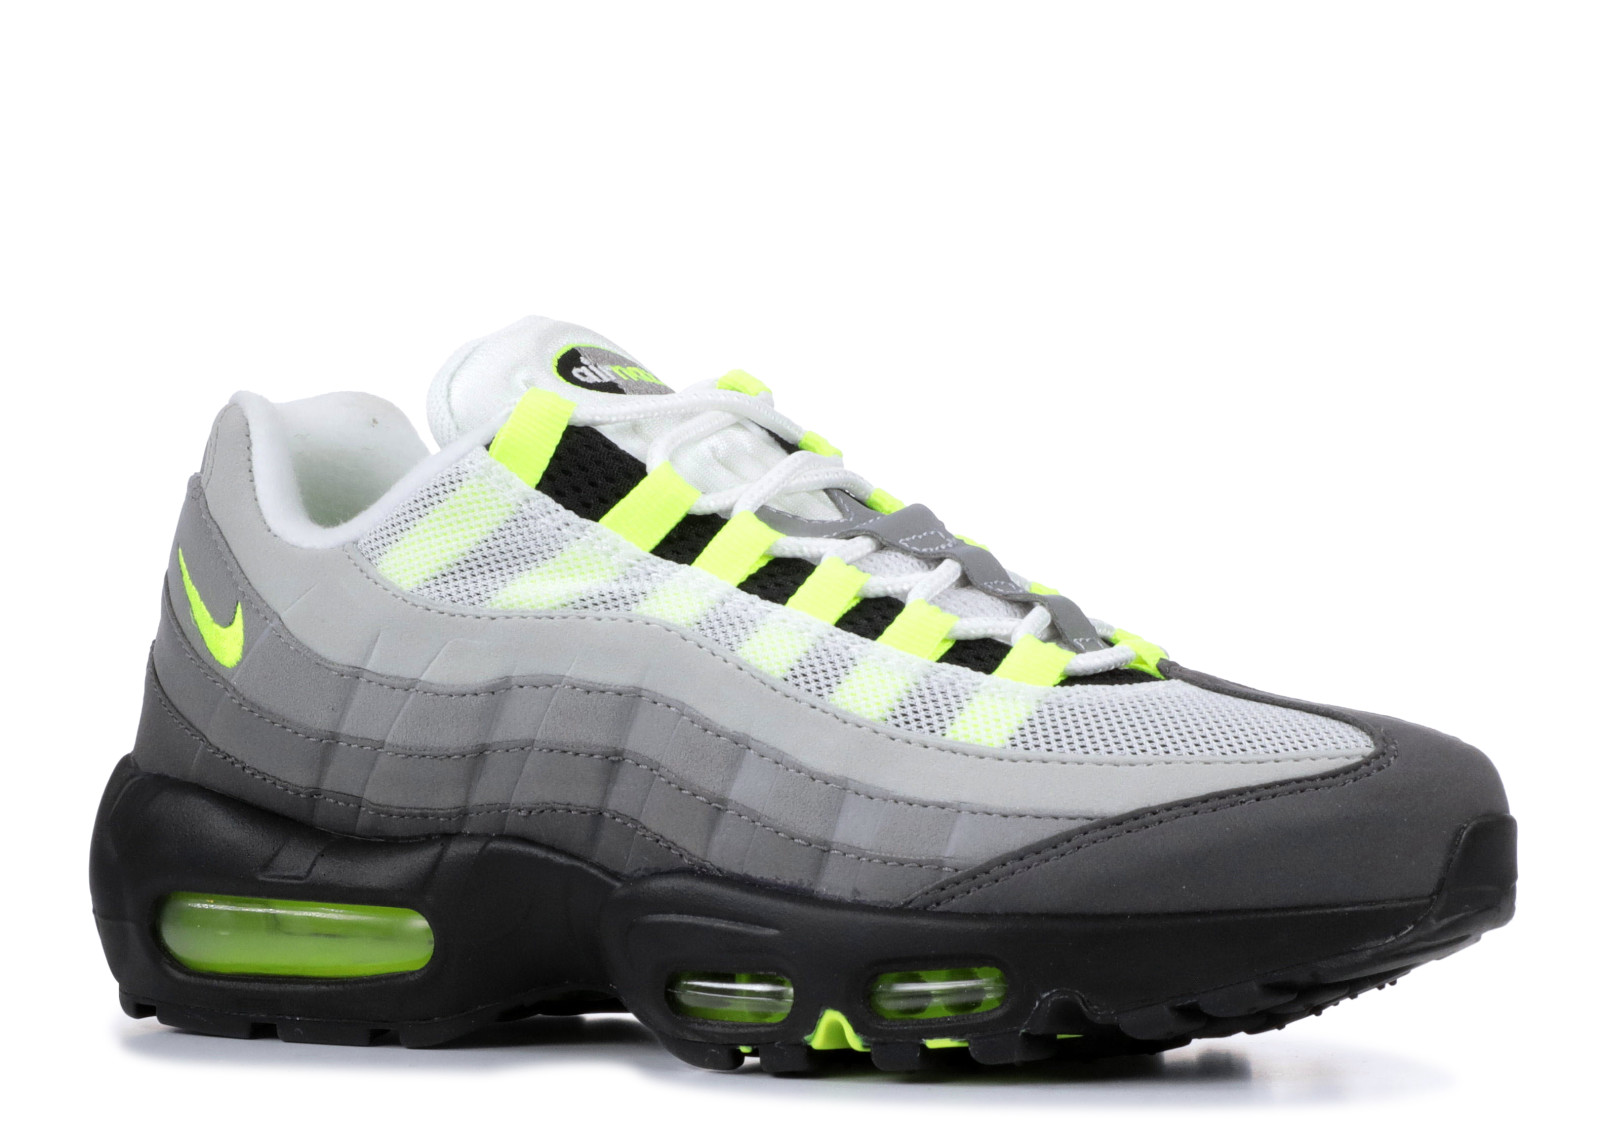 reputable site f8ff0 15db3 Nike - Men - Air Max 95 Og  Neon  - 554970-071 - Size 10.5